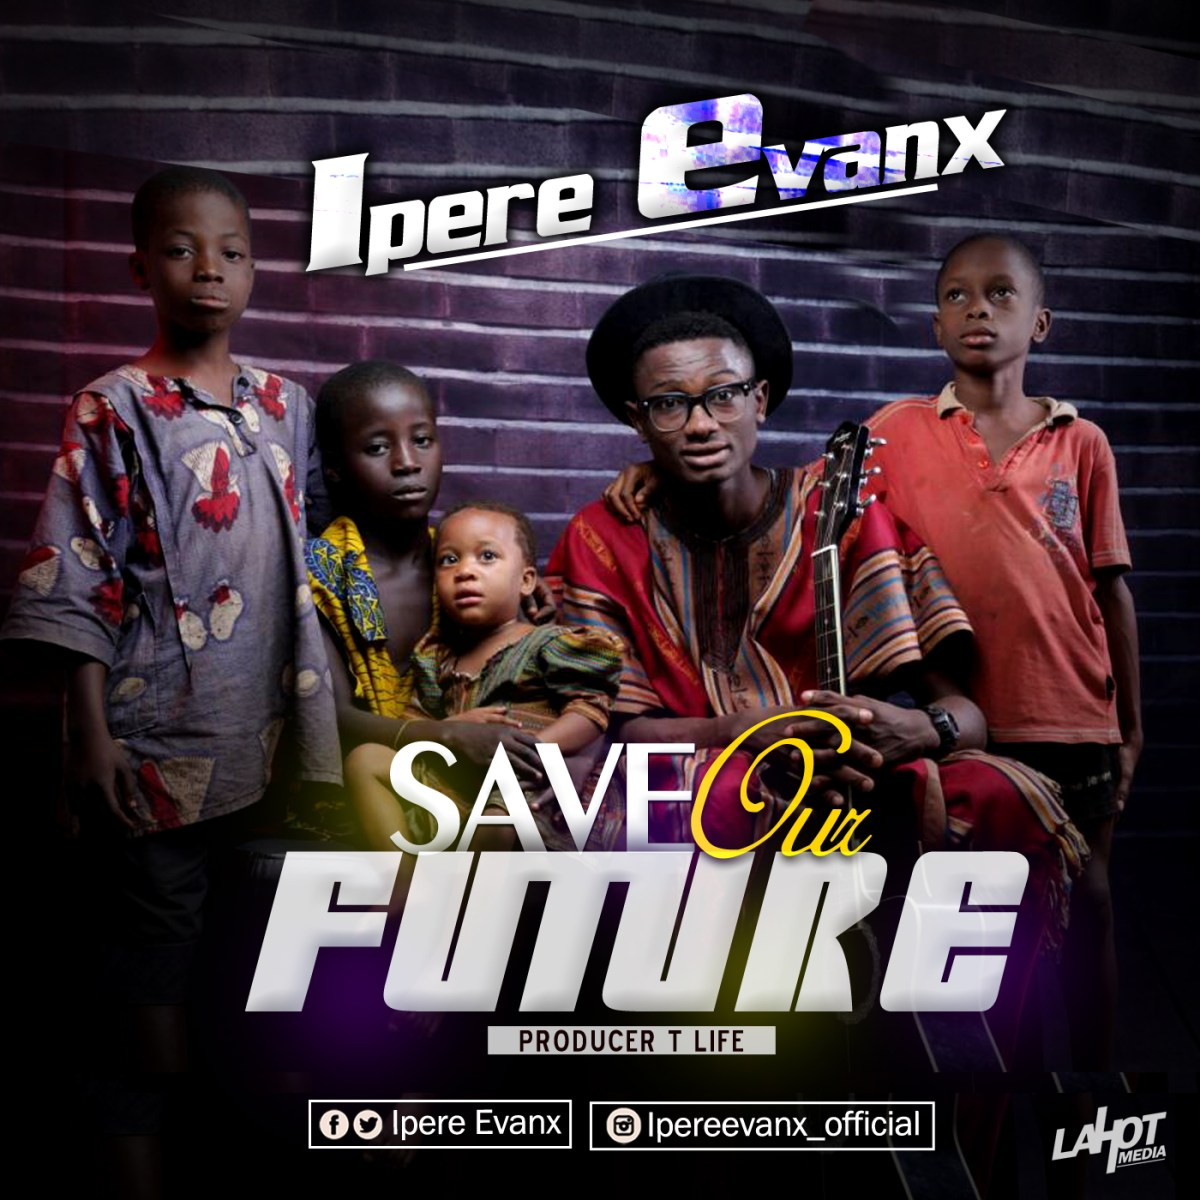 #Music: Save Our Future - Ipere Evanx